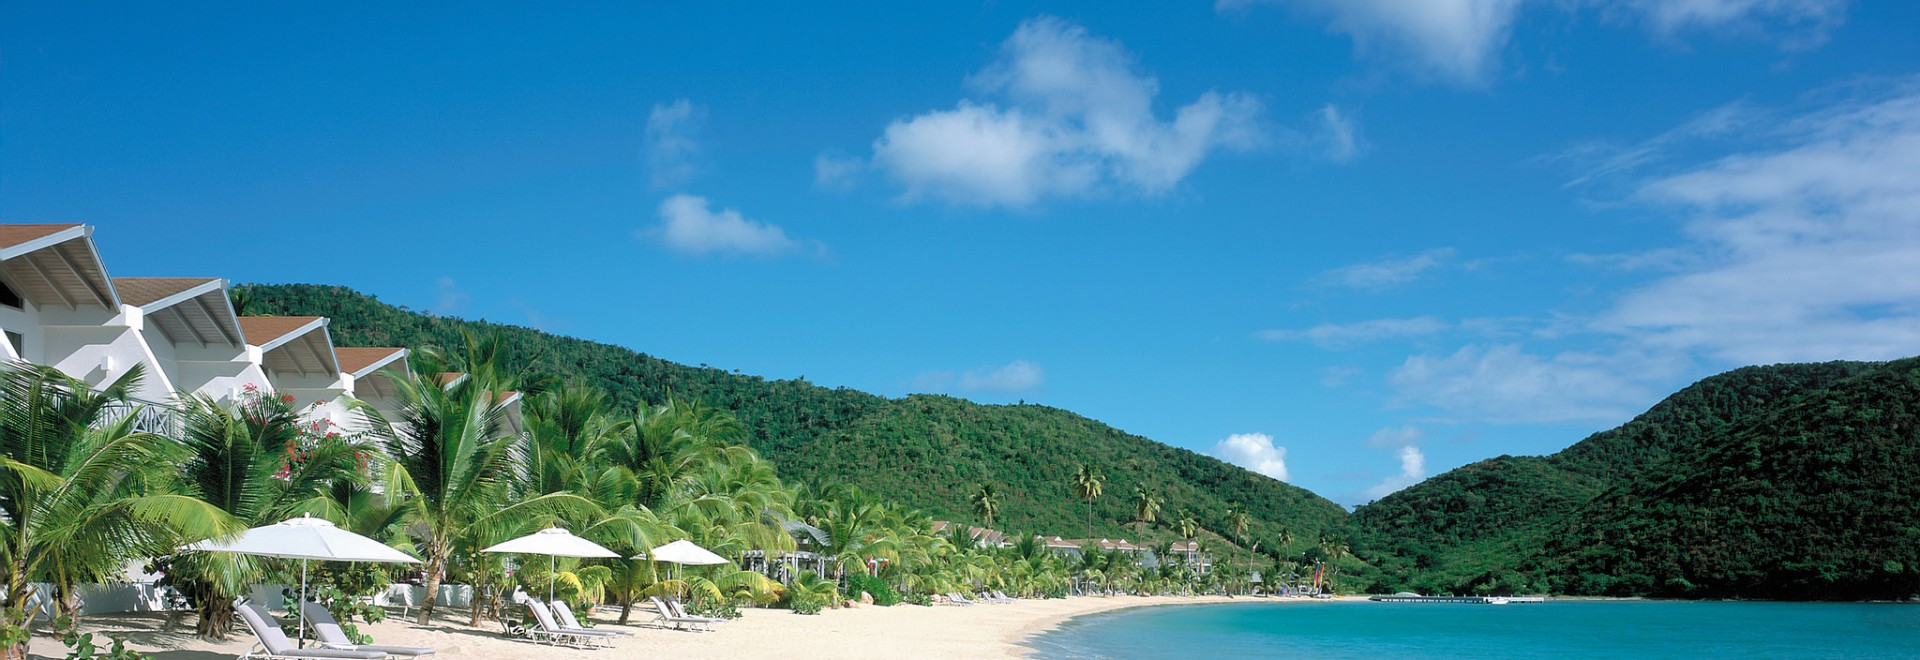 Fully Inclusive Chill out Accommodation Special - Carlisle Bay, Antigua